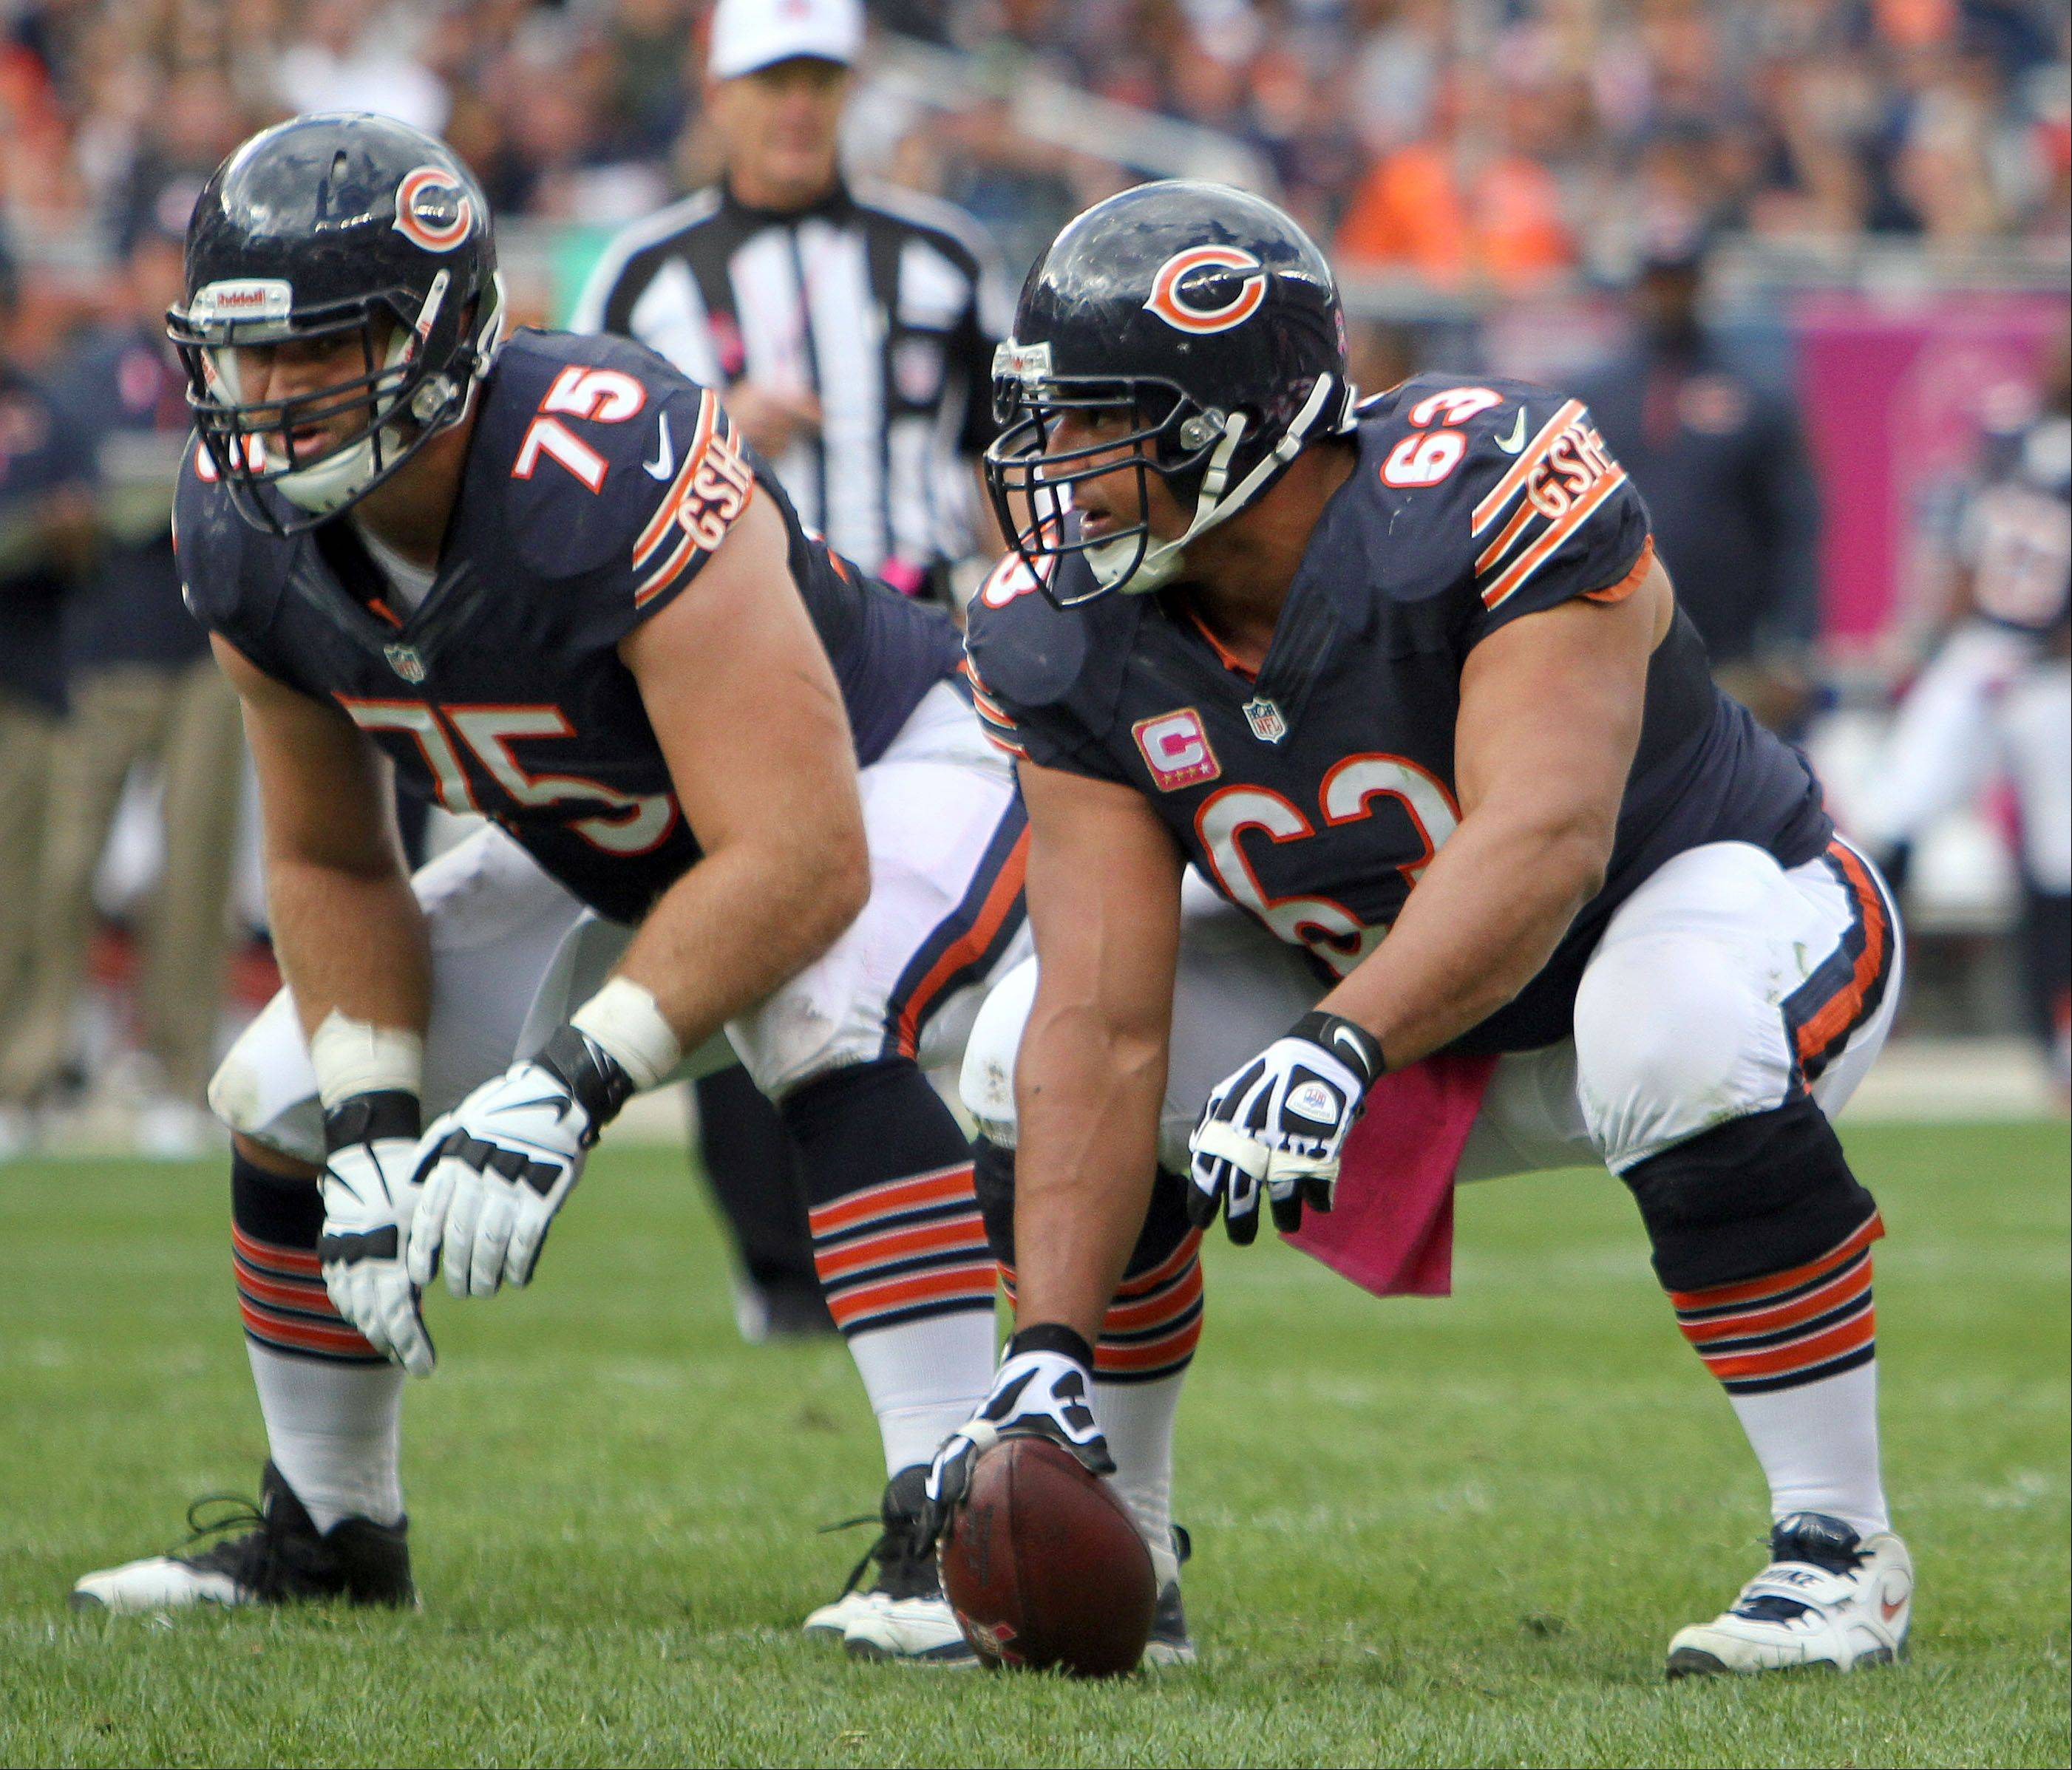 Center Roberto Garza, a 13-year veteran including the last nine with the Bears, has anchored an offensive line featuring the same five players starting in all 15 games this season — including rookie Kyle Long, left. The others, who are not pictured, are Jermon Bushrod, Matt Slauson and Jordan Mills.